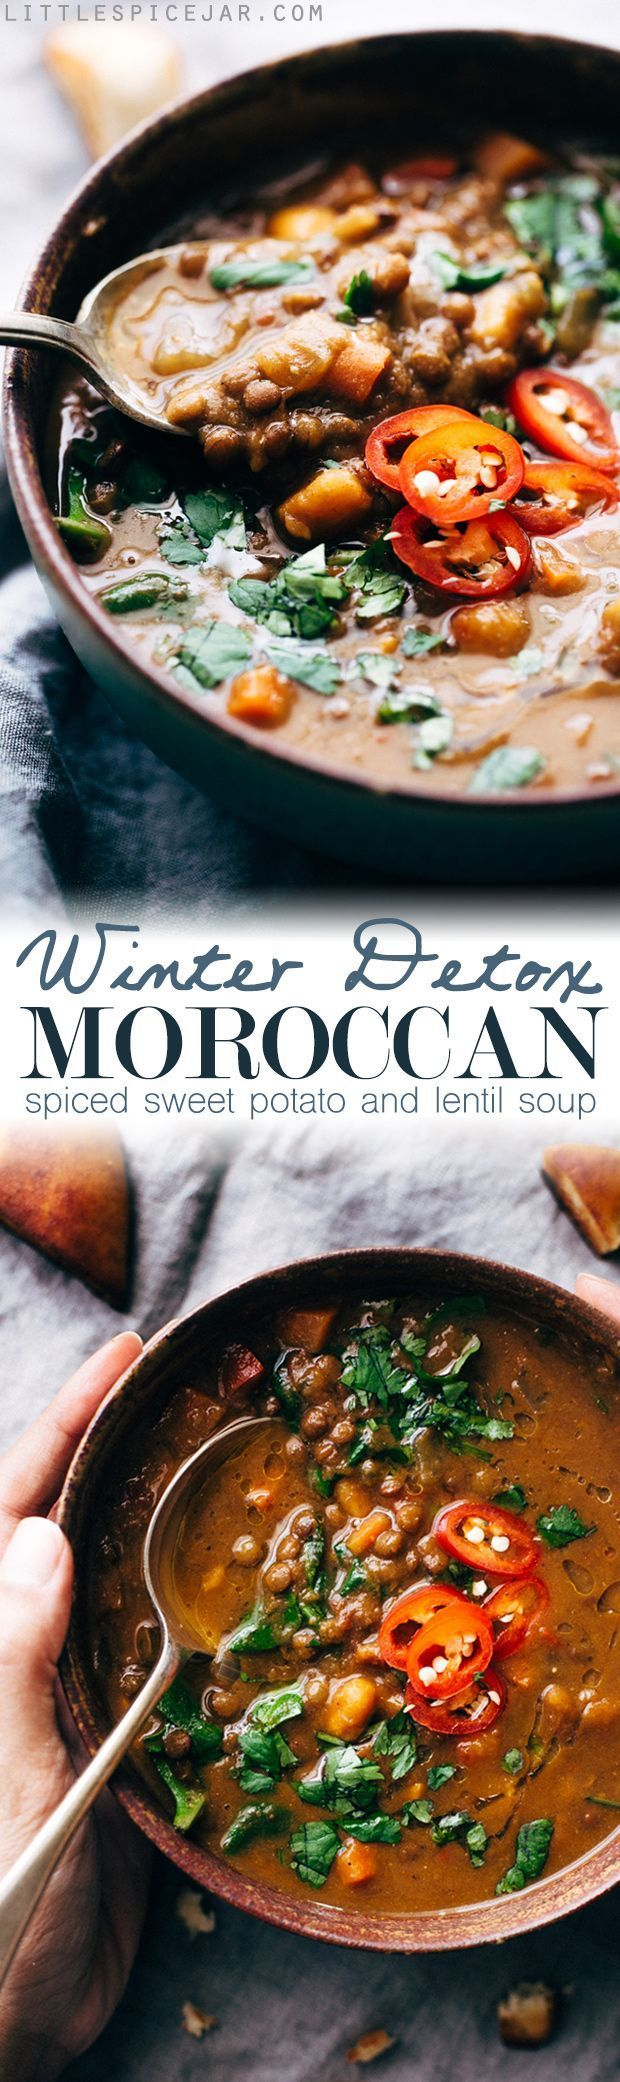 Winter Detox Moroccan Sweet Potato Lentil Soup - an easy, vegetarian detox soup that's loaded with tons of veggies, lentils, and sweet potatoes to keep you full! Light on the calories too! #moroccansoup #soup #lentilsoup #slowcooker